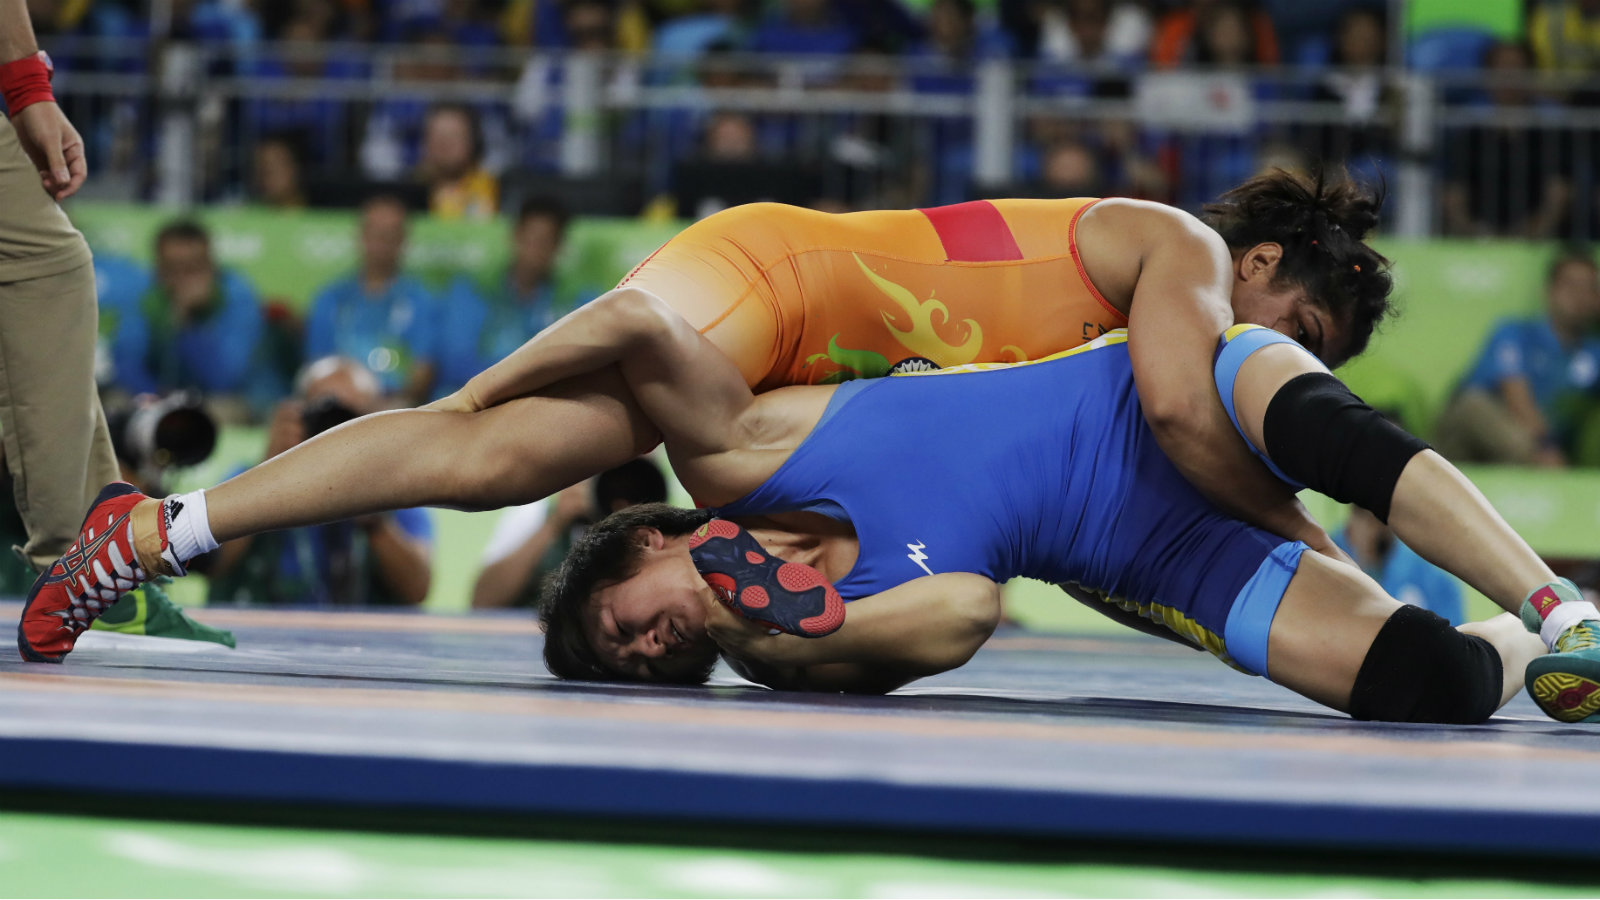 India's Sakshi Malik, top, competes against Kyrgyzstan's Aisuluu Tynybekova in the women's wrestling freestyle 58-kg competition at the 2016 Summer Olympics in Rio de Janeiro, Brazil, Wednesday, Aug. 17, 2016.